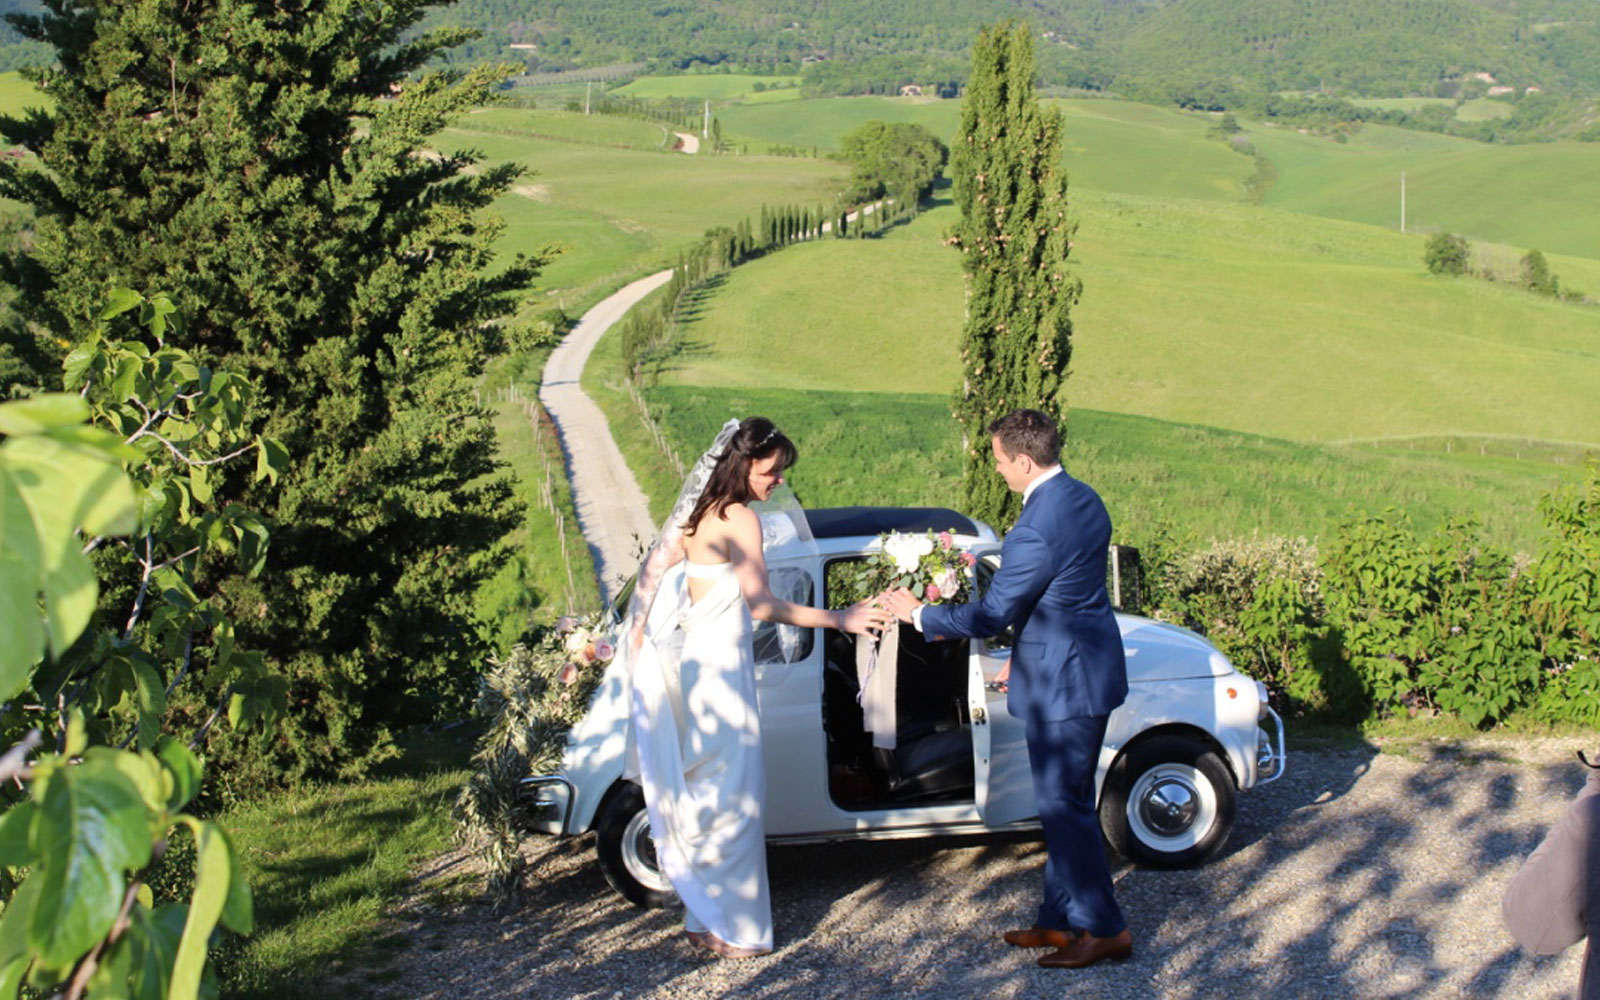 Honeymoons and weddings in Italy